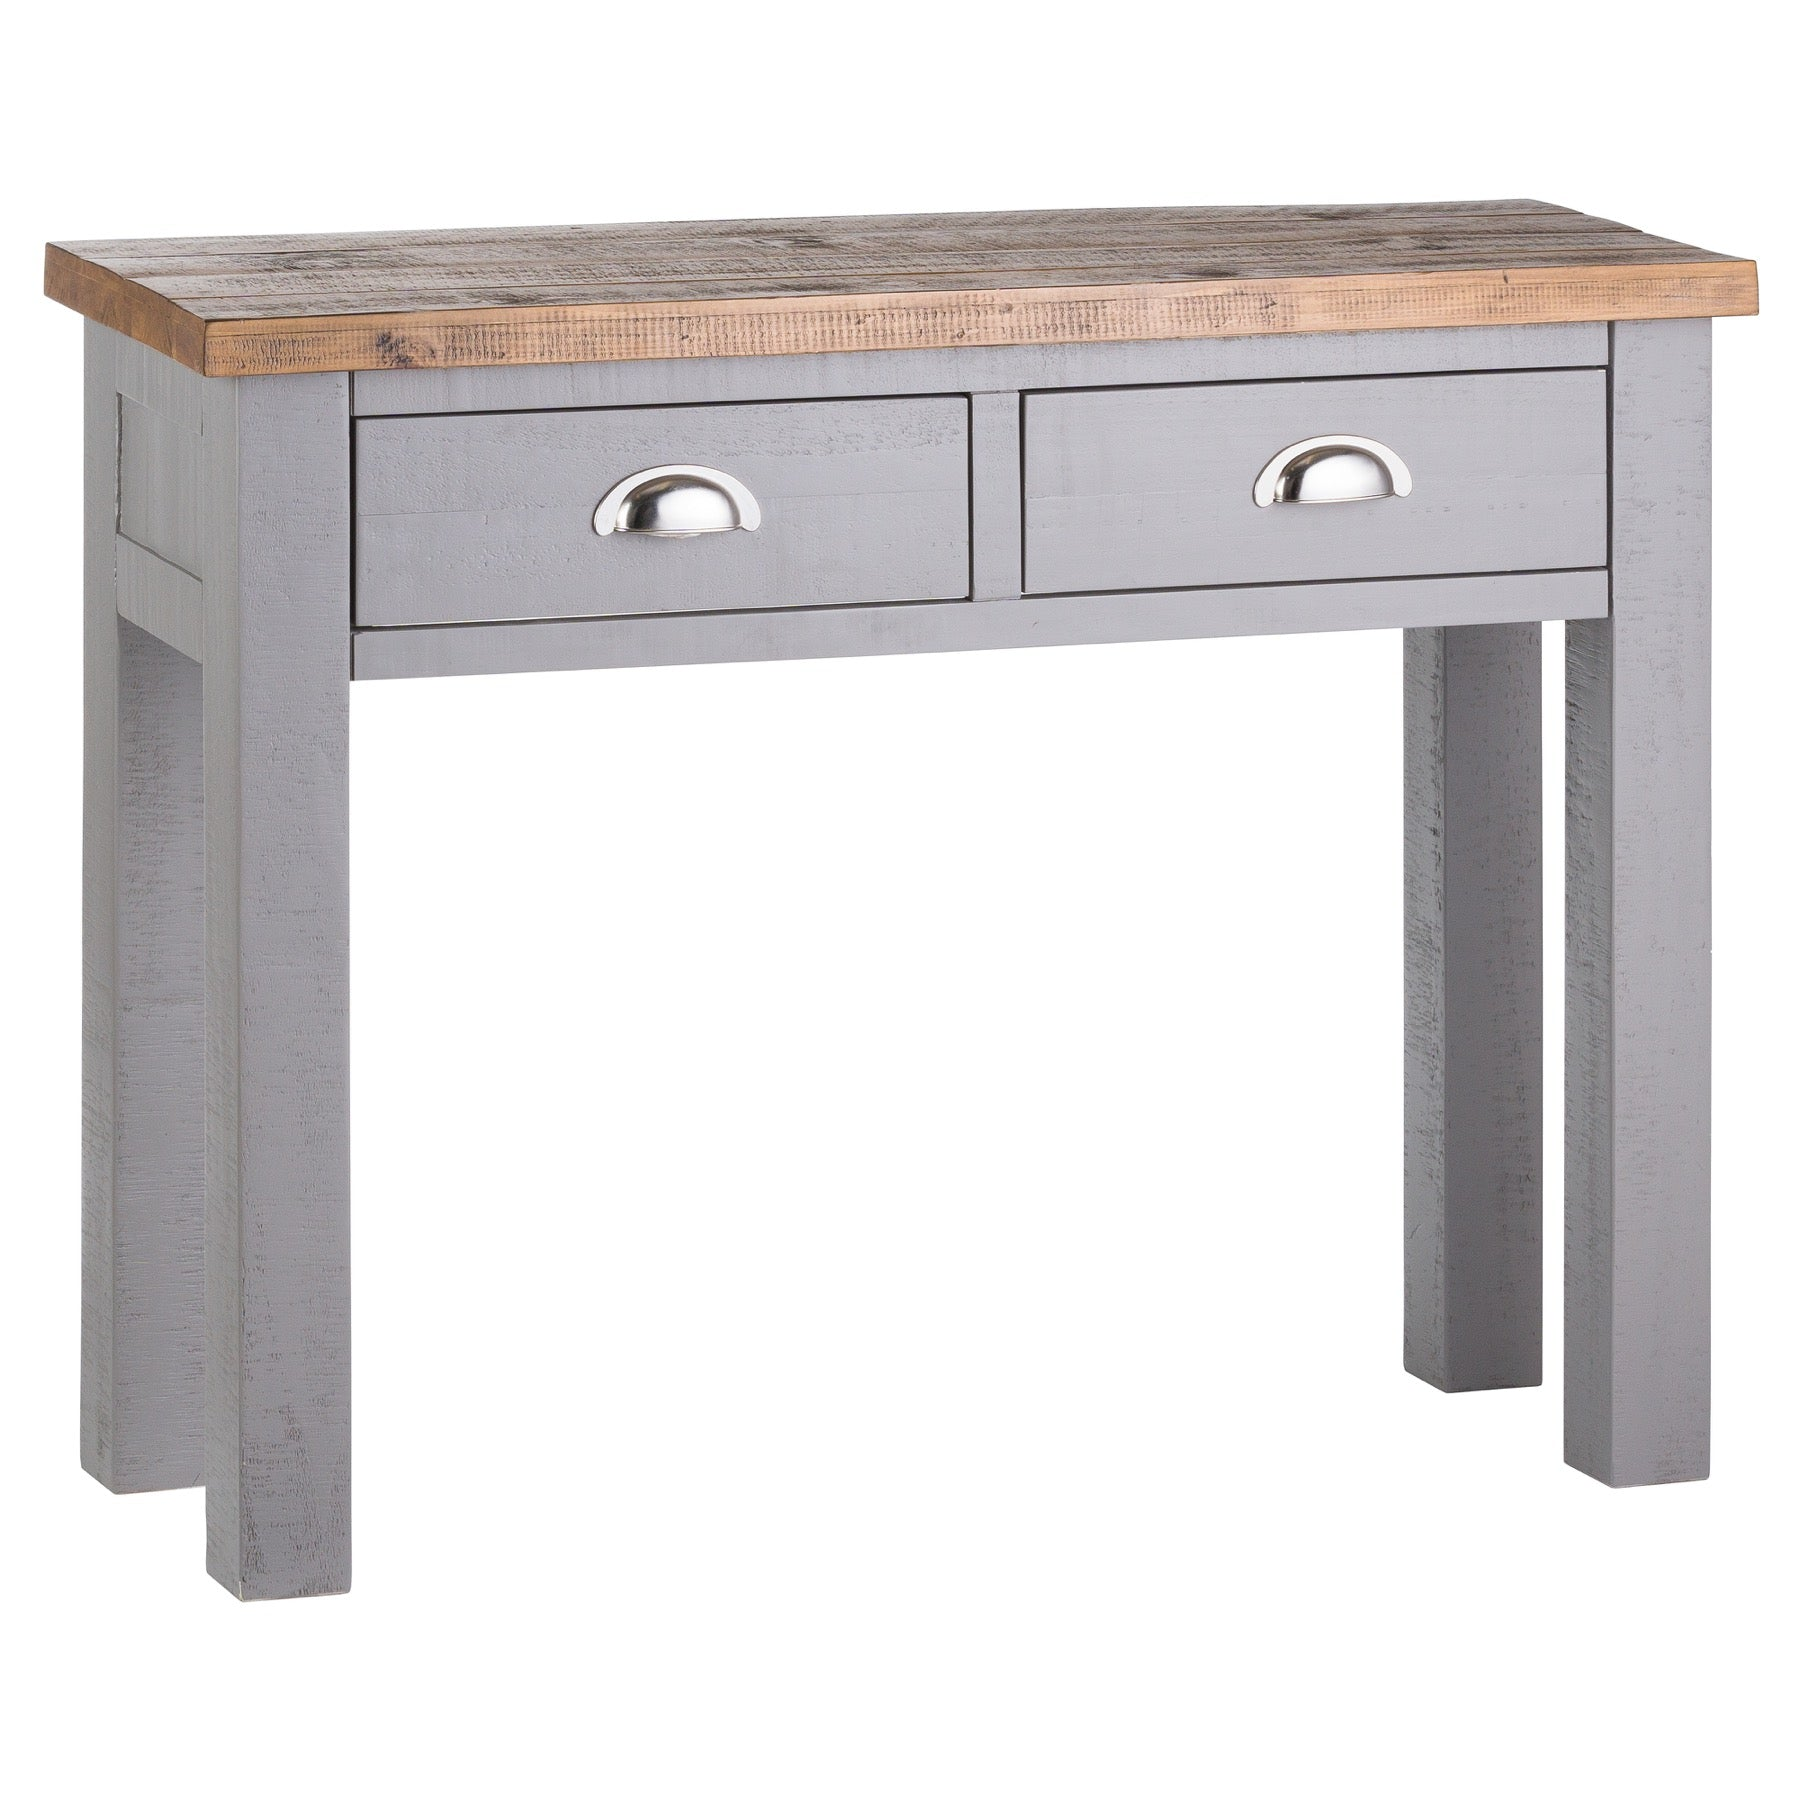 The Helmsley Collection Two Drawer Console